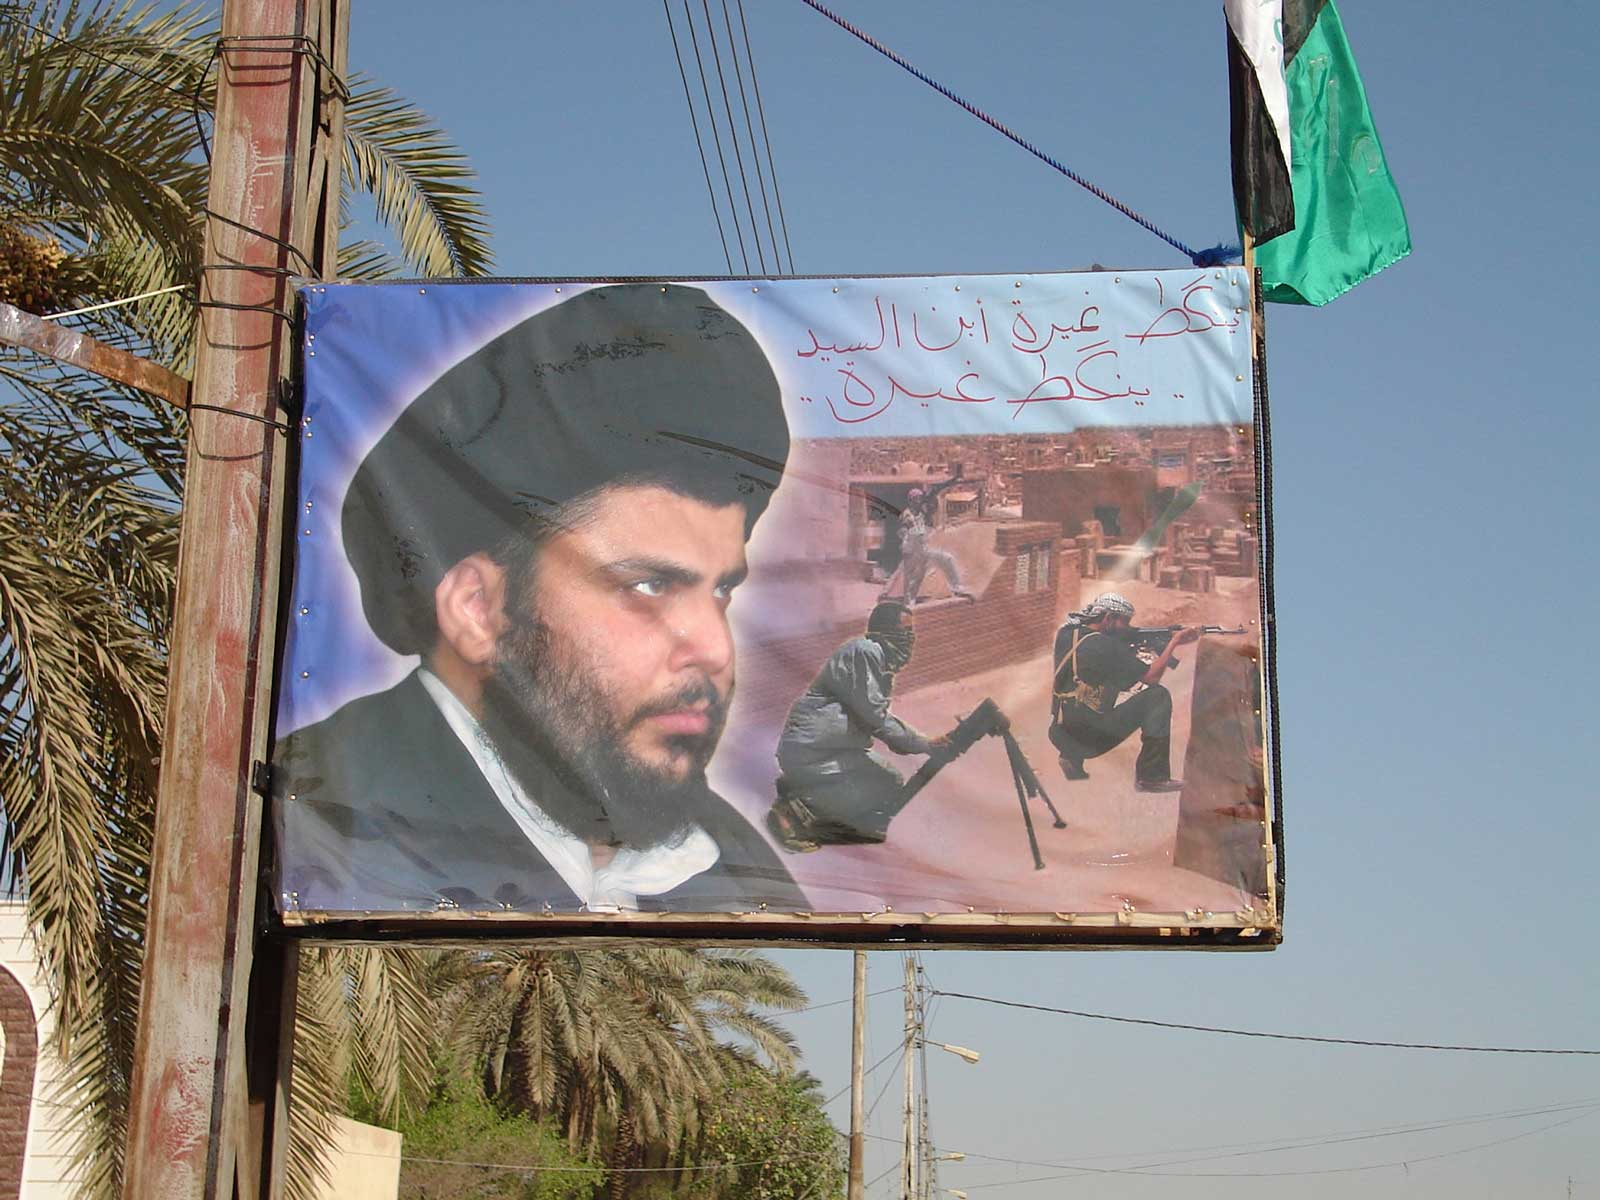 A poster for the anti-British Muqtadar al Sadr on the streets of Basra summer 2005. Image: Private collection)